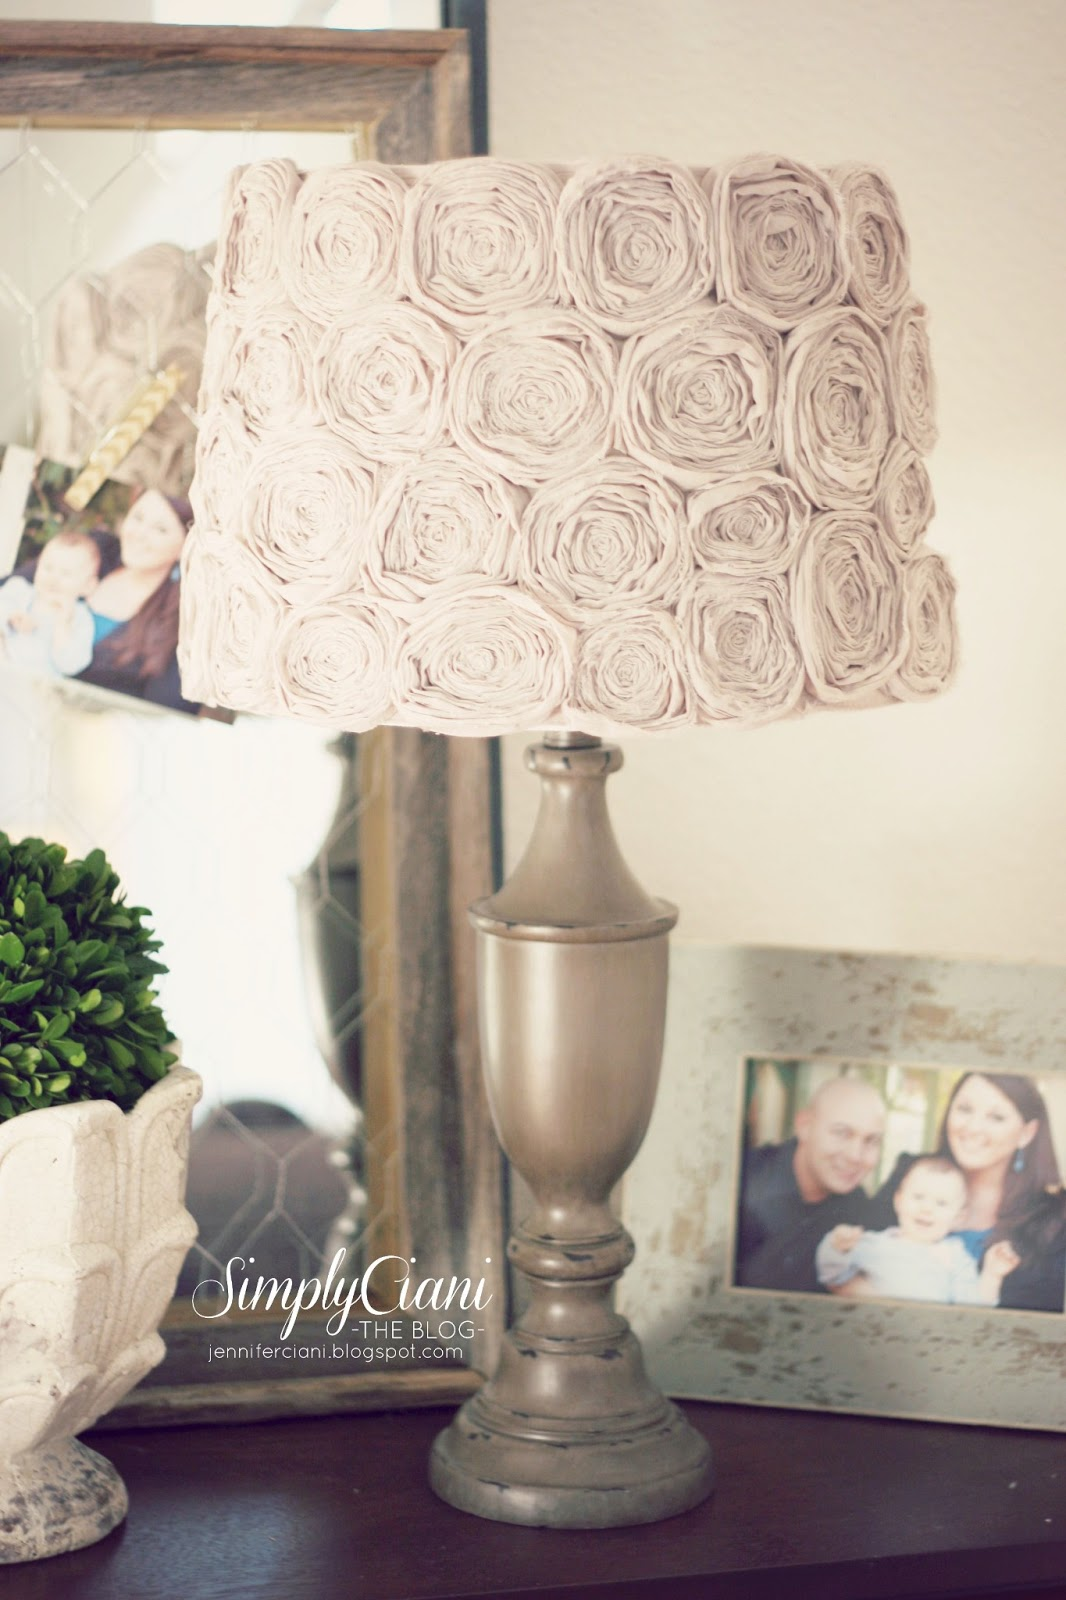 diy shabby chic rosette lamp shade simply ciani. Black Bedroom Furniture Sets. Home Design Ideas